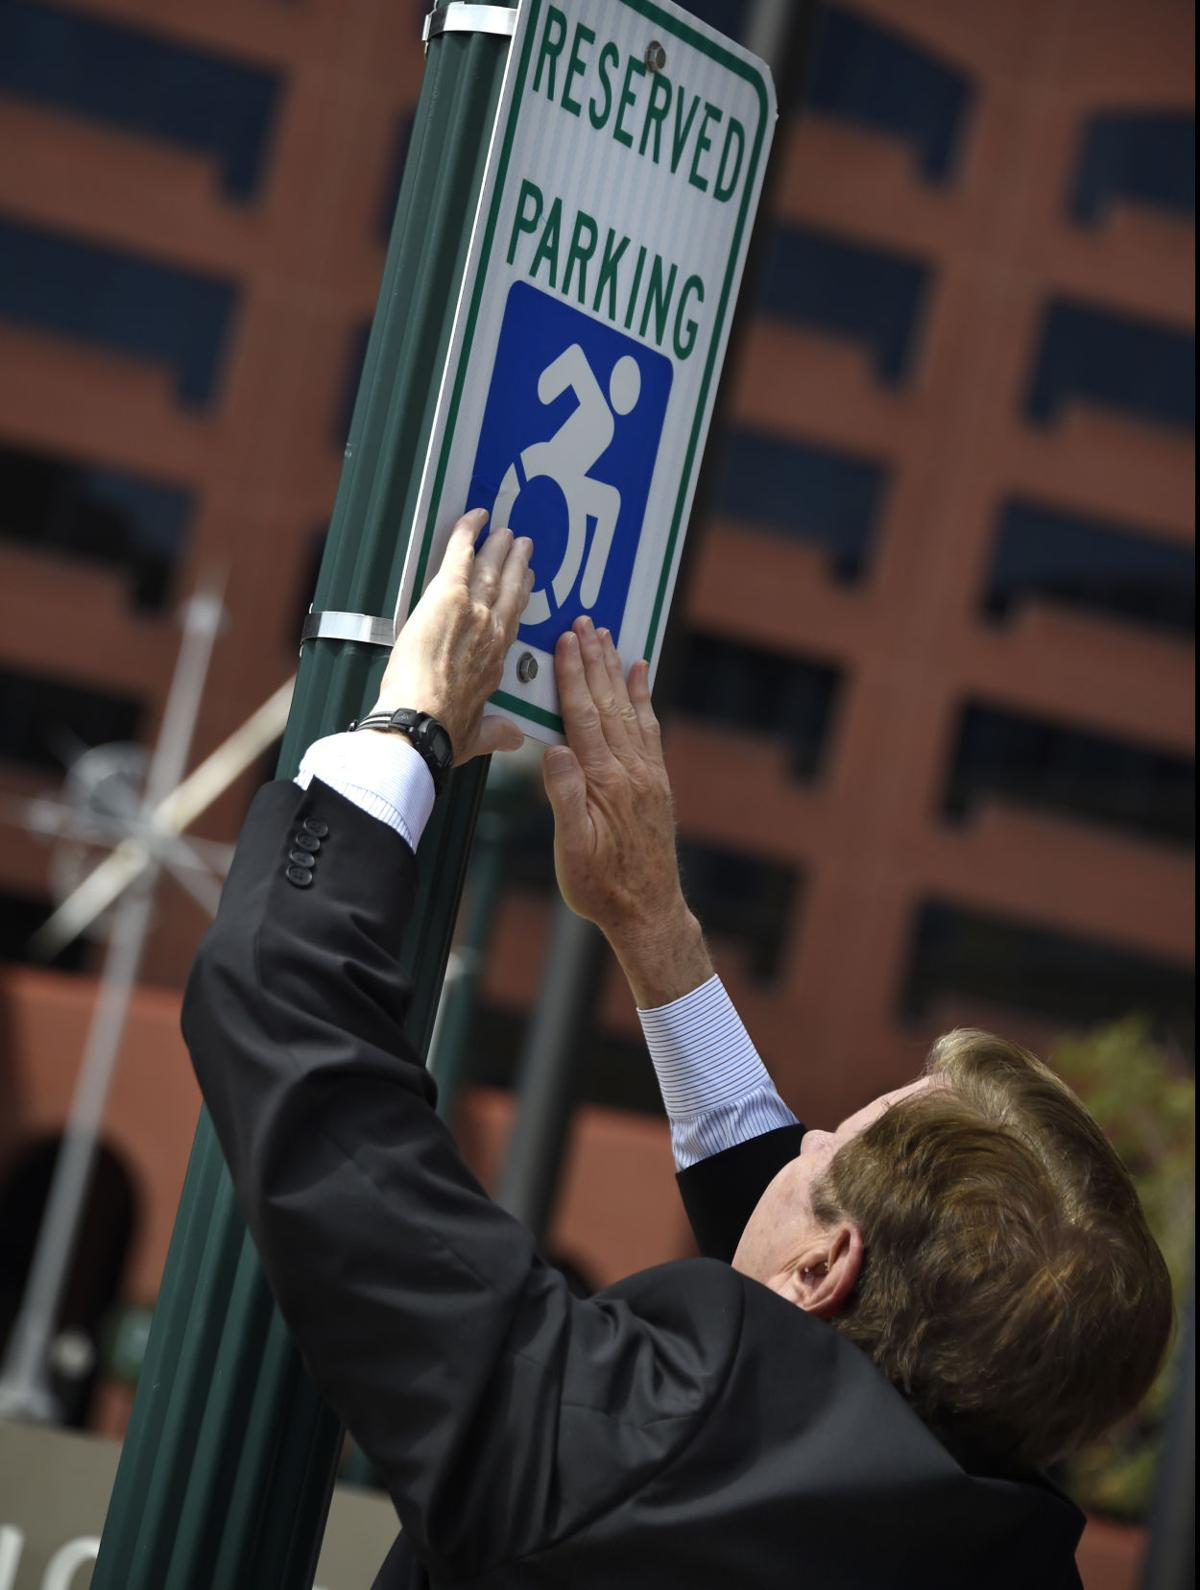 Colorado Springs embraces new accessibility icon